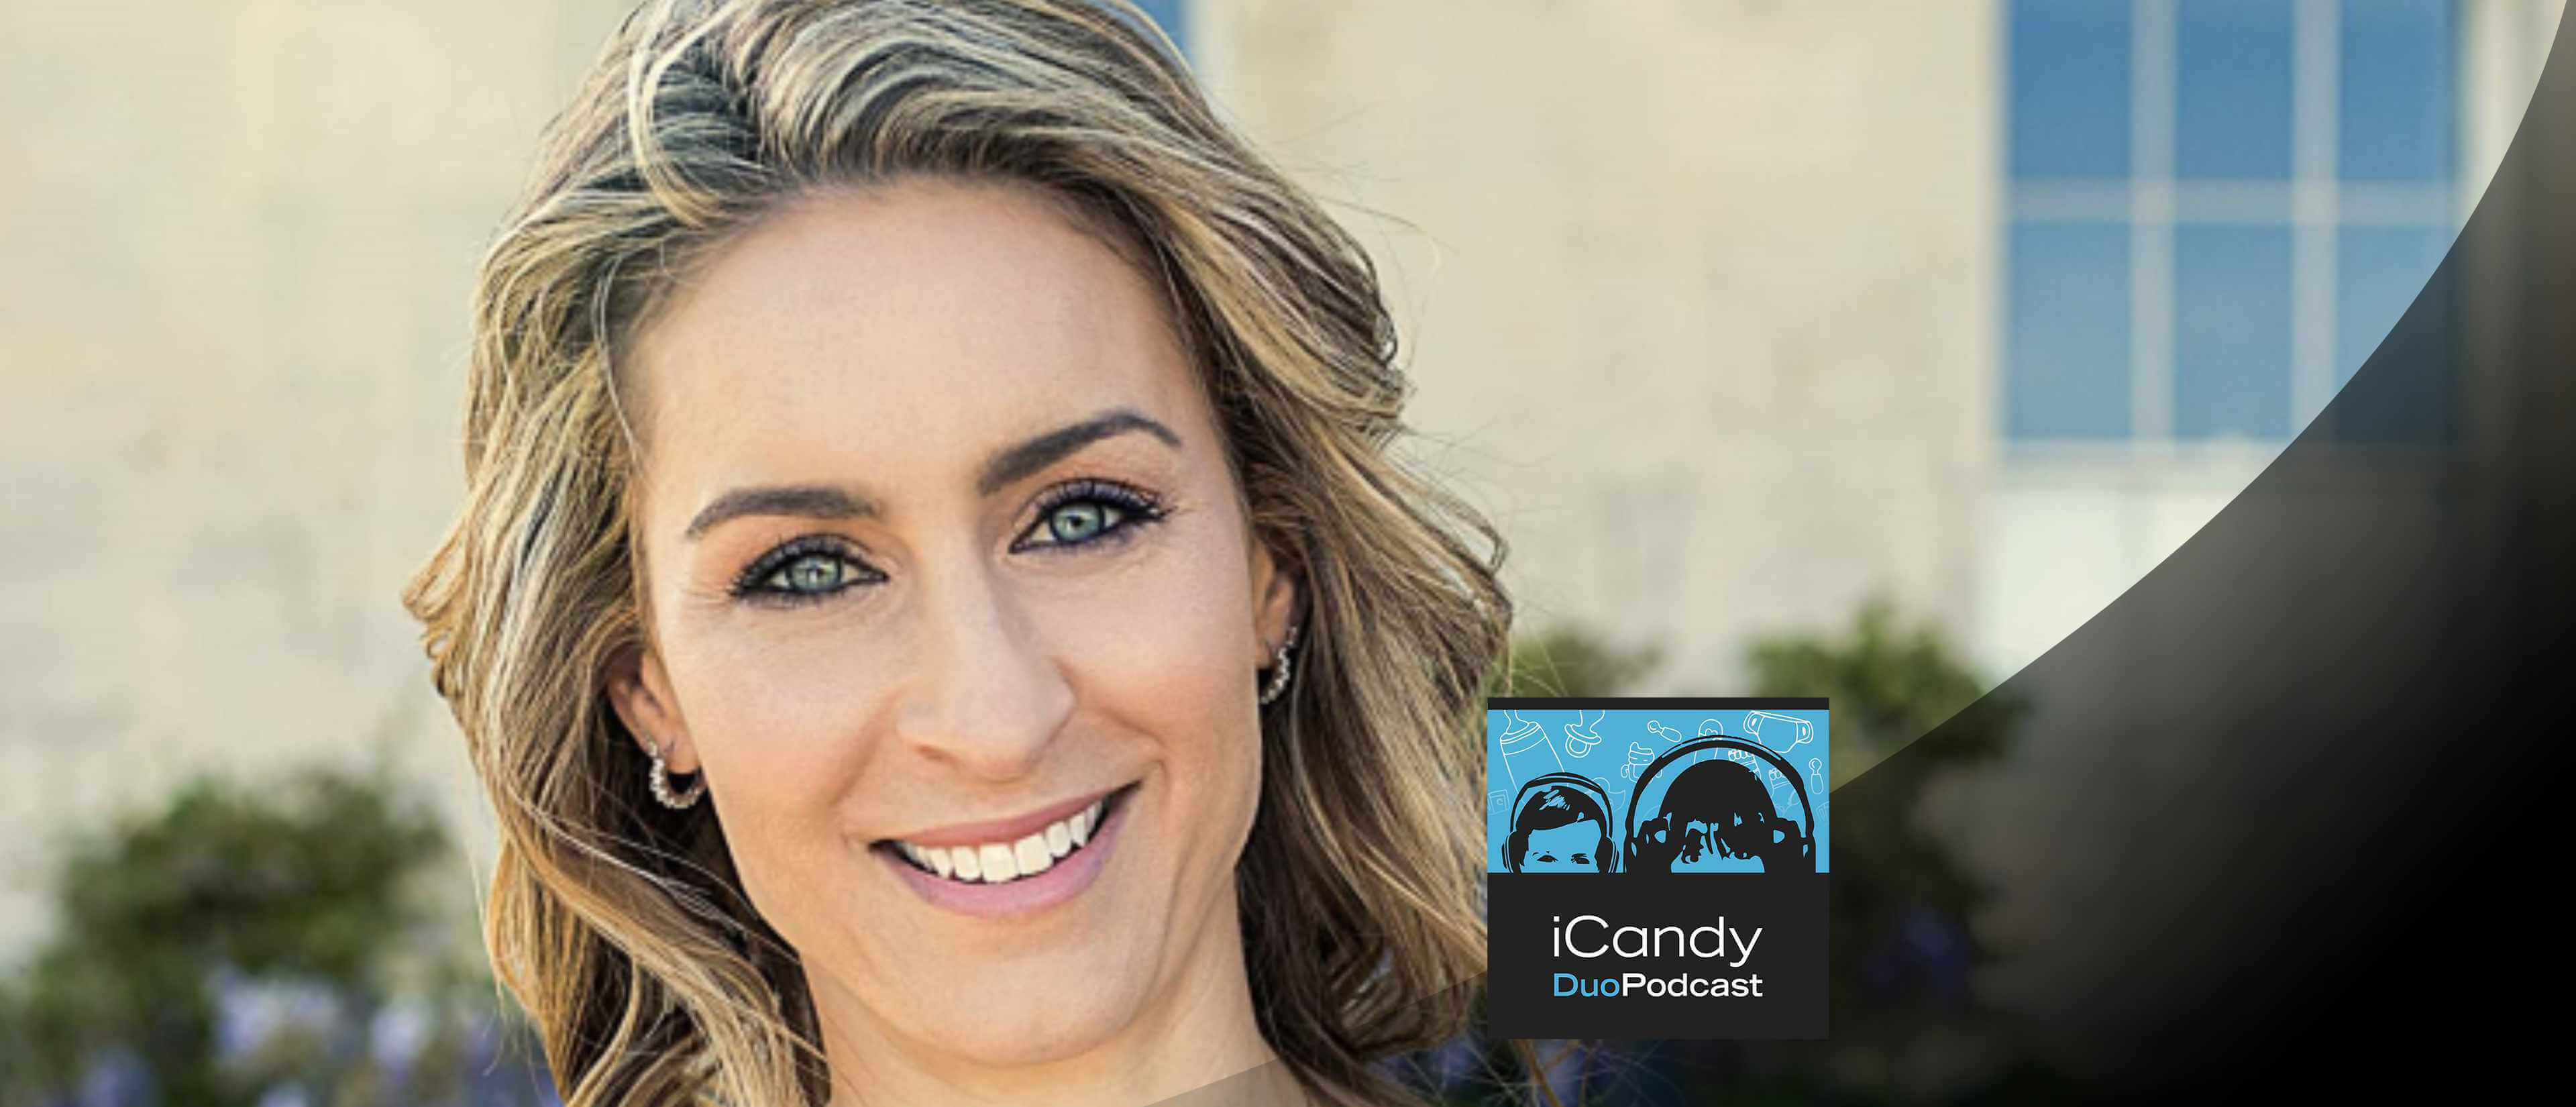 iCandy Duo Podcast - Amy Williams MBE